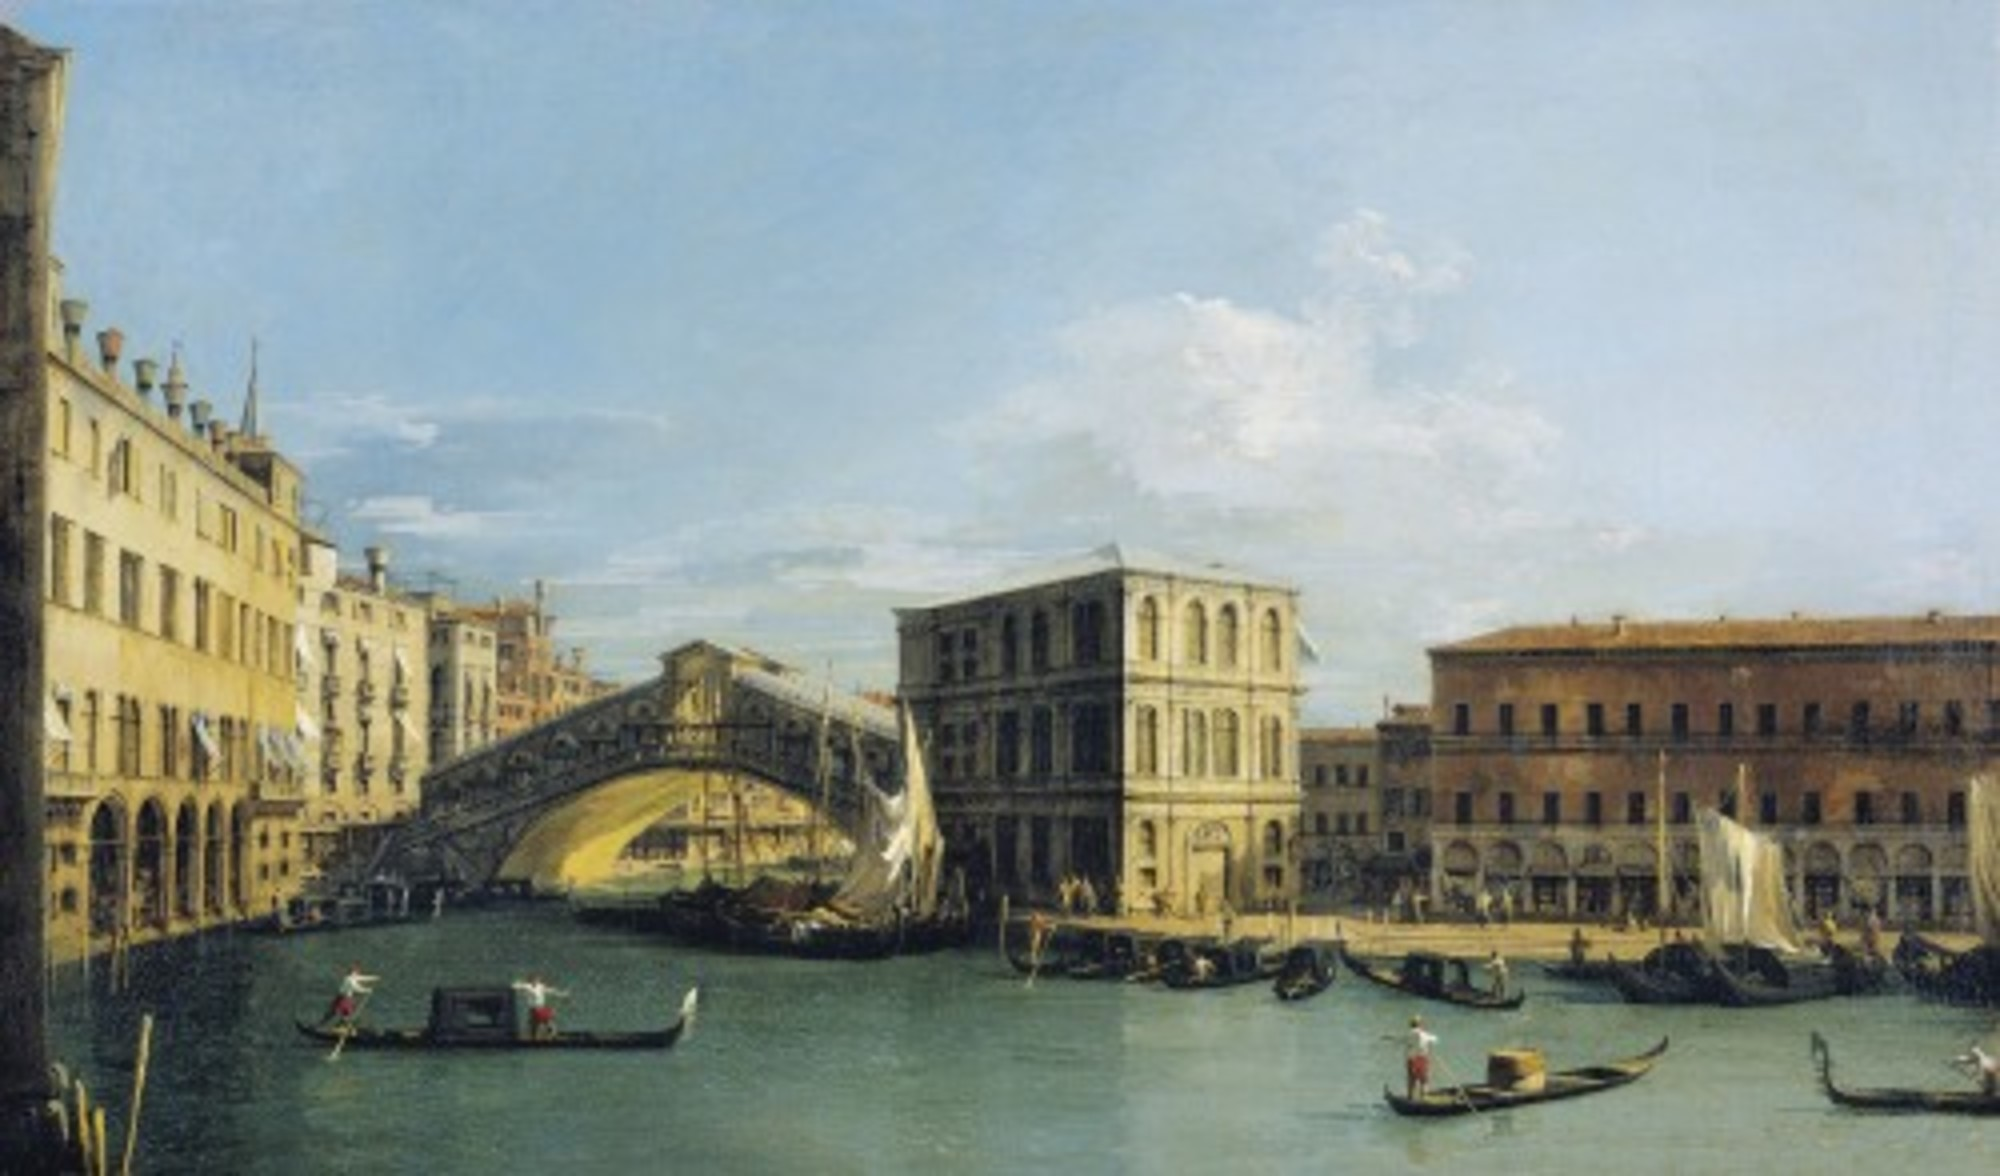 Canaletto---Rialto-Bridge-from-the-North-RCIN-400668.jpg